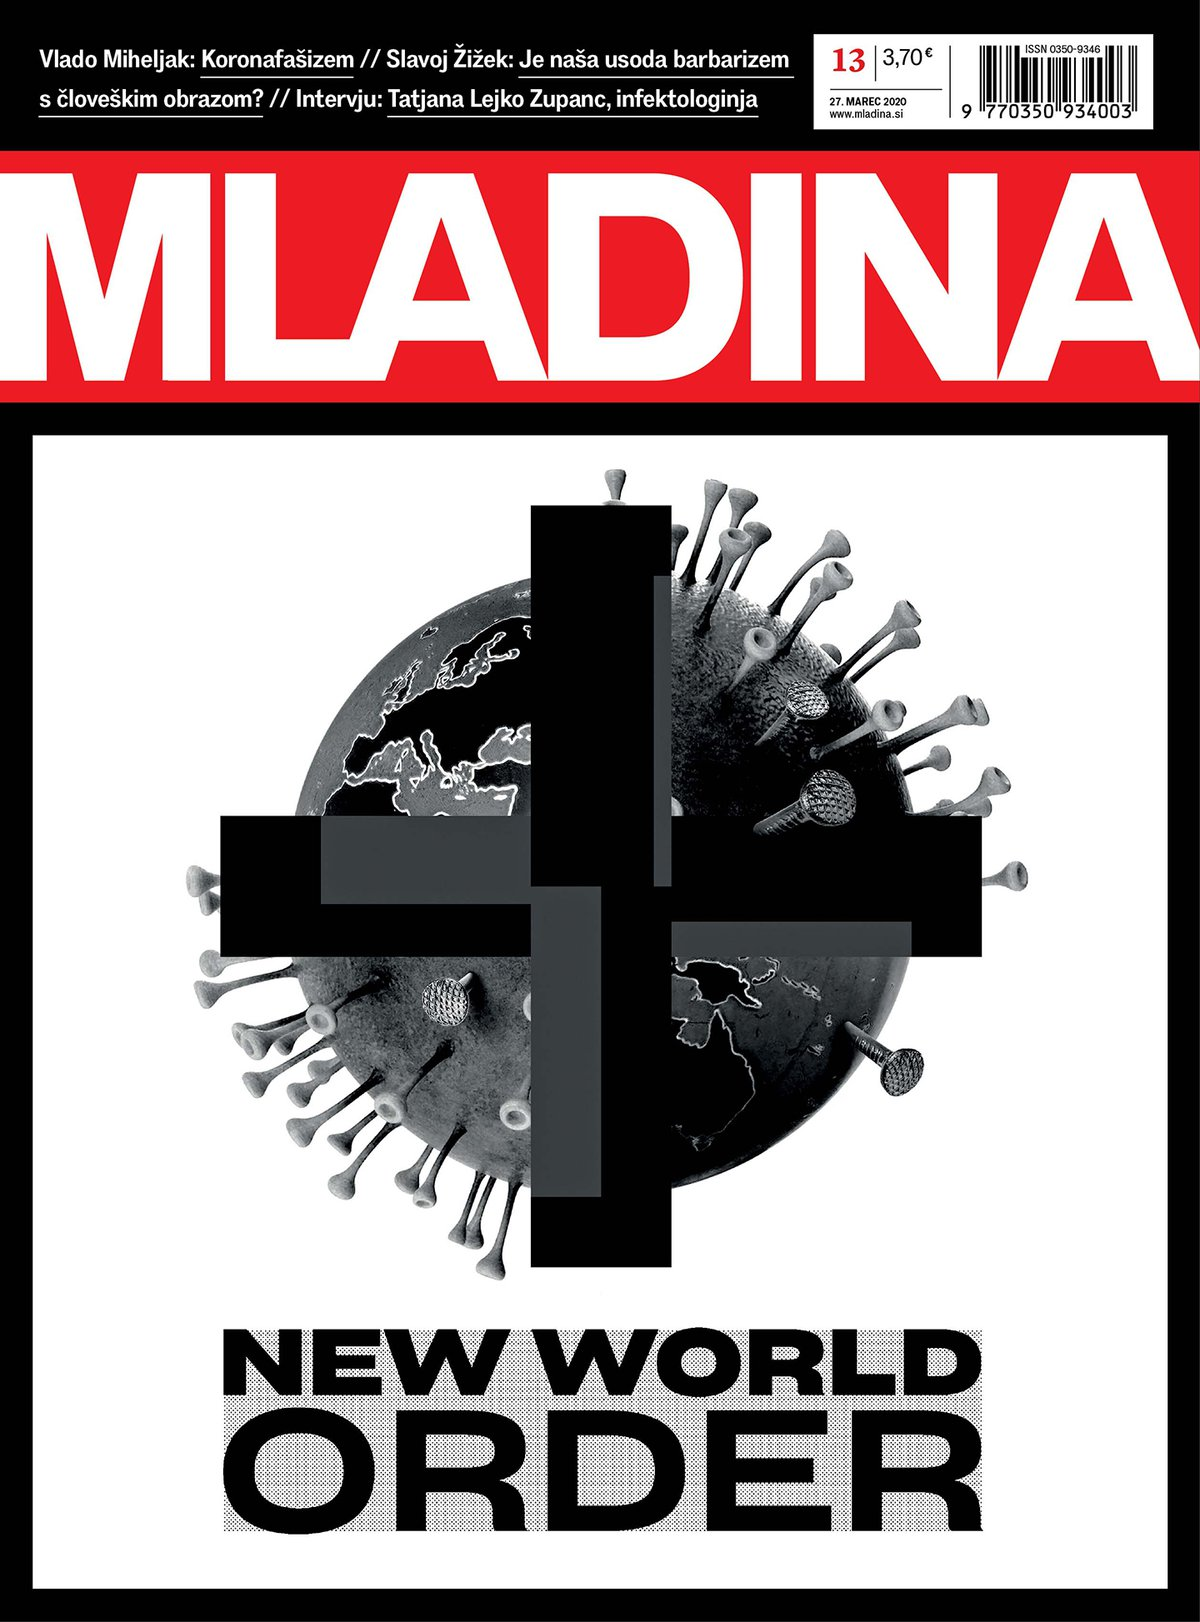 Cover of Mladina weekly, 27 March 2020